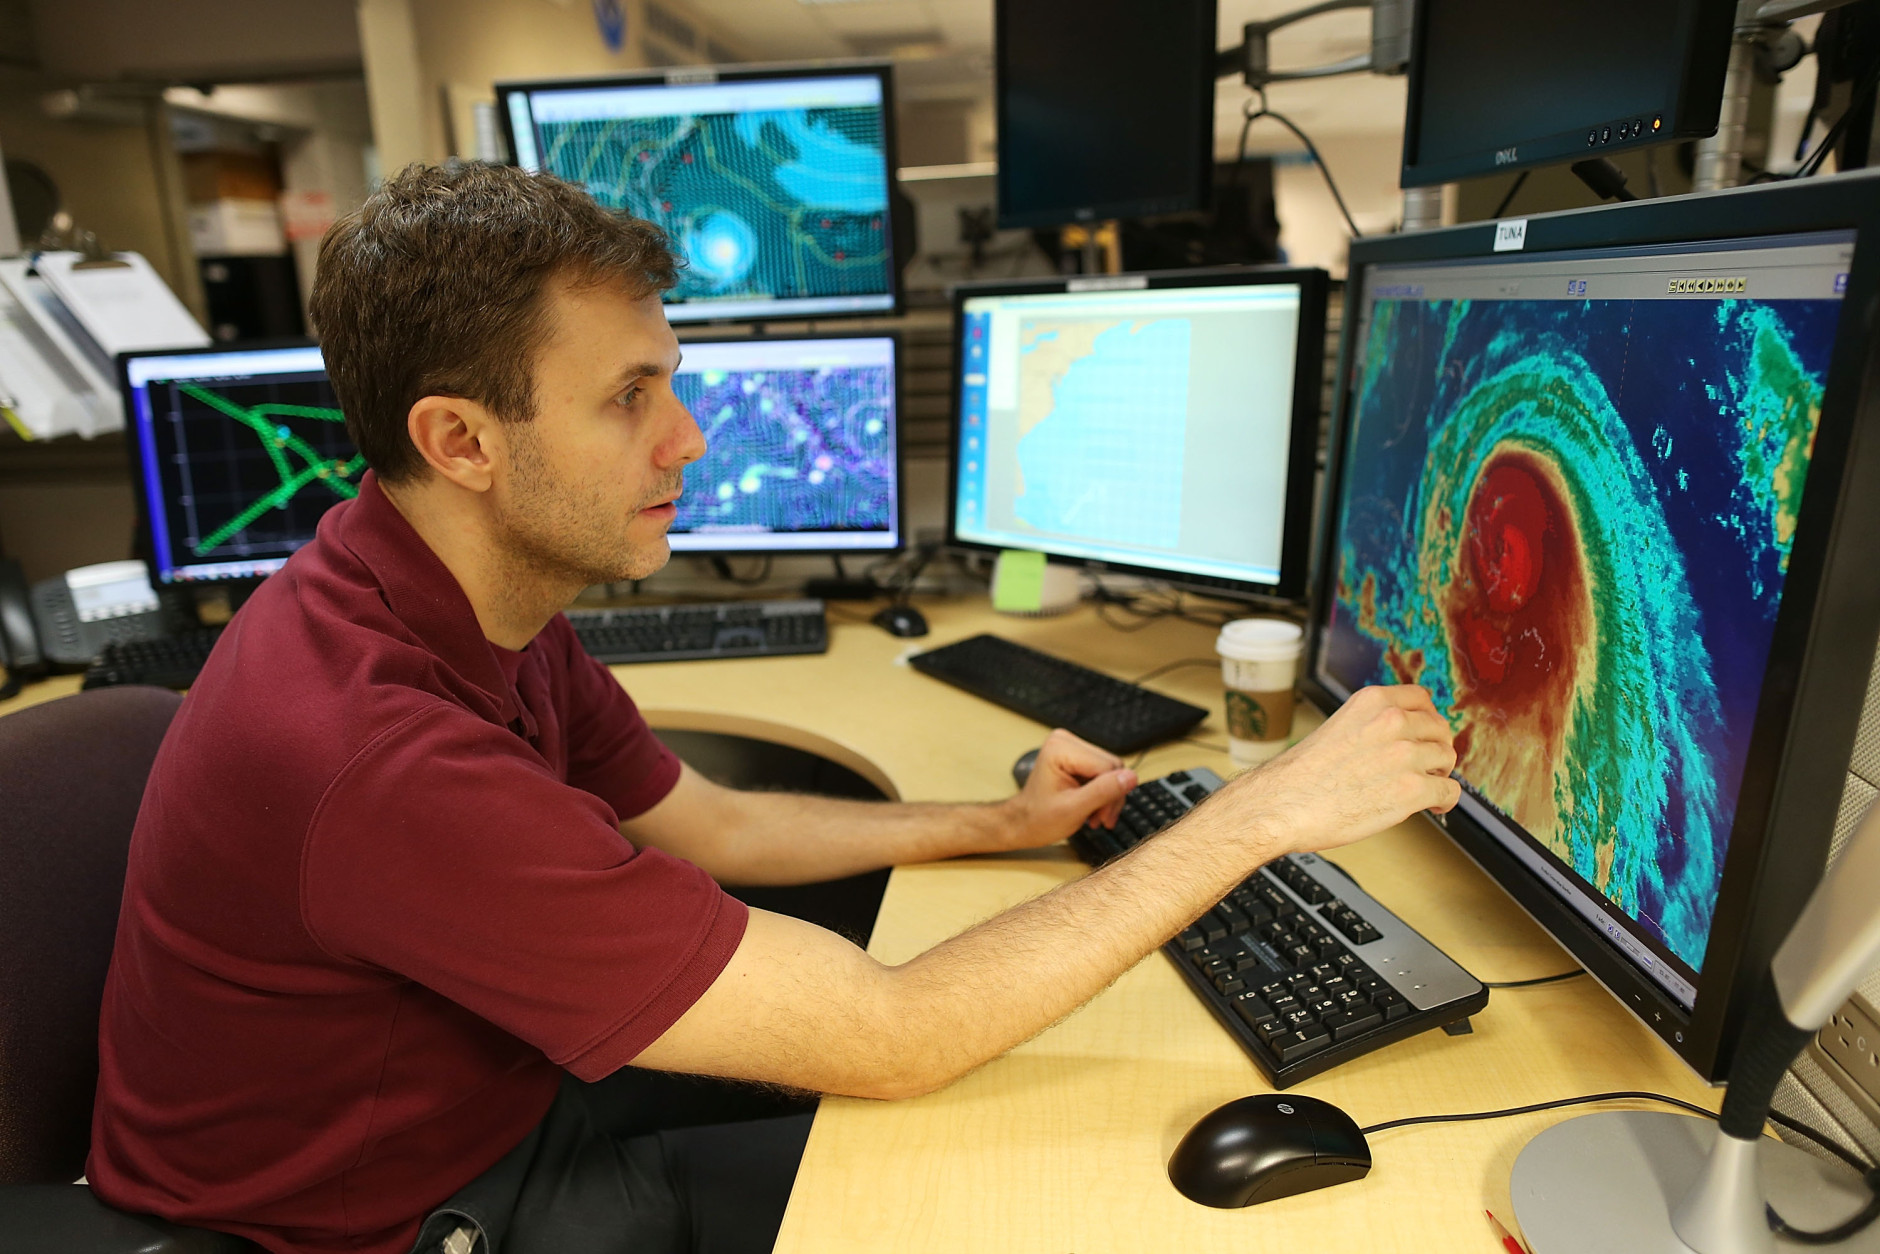 MIAMI, FL - OCTOBER 01:  Eric Blake, Hurricane Specialist, uses a computer at the National Hurricane Center to track the path of Hurricane Joaquin, a Category 3 storm with maximum sustained winds of 125 mph, as it passes over parts of the Bahamas on October 1, 2015 in Miami, Florida. The National Hurricane Center forecasters are still trying to determine if the hurricane will turn to the north and northwest, which might affect the U.S. East Coast.  (Photo by Joe Raedle/Getty Images)